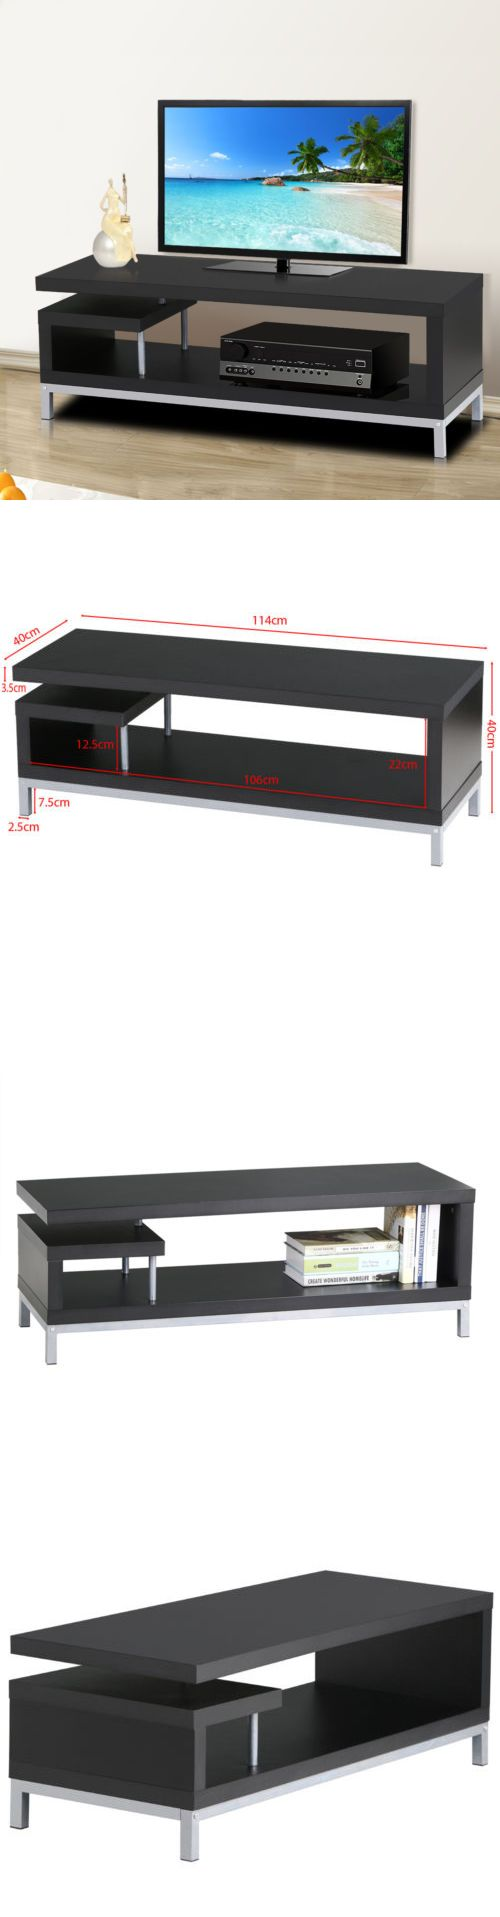 Tech craft tv stands - Speaker Mounts And Stands Modern Contemporary Lcd Plasma Tv Stand Television Entertainment Center Living